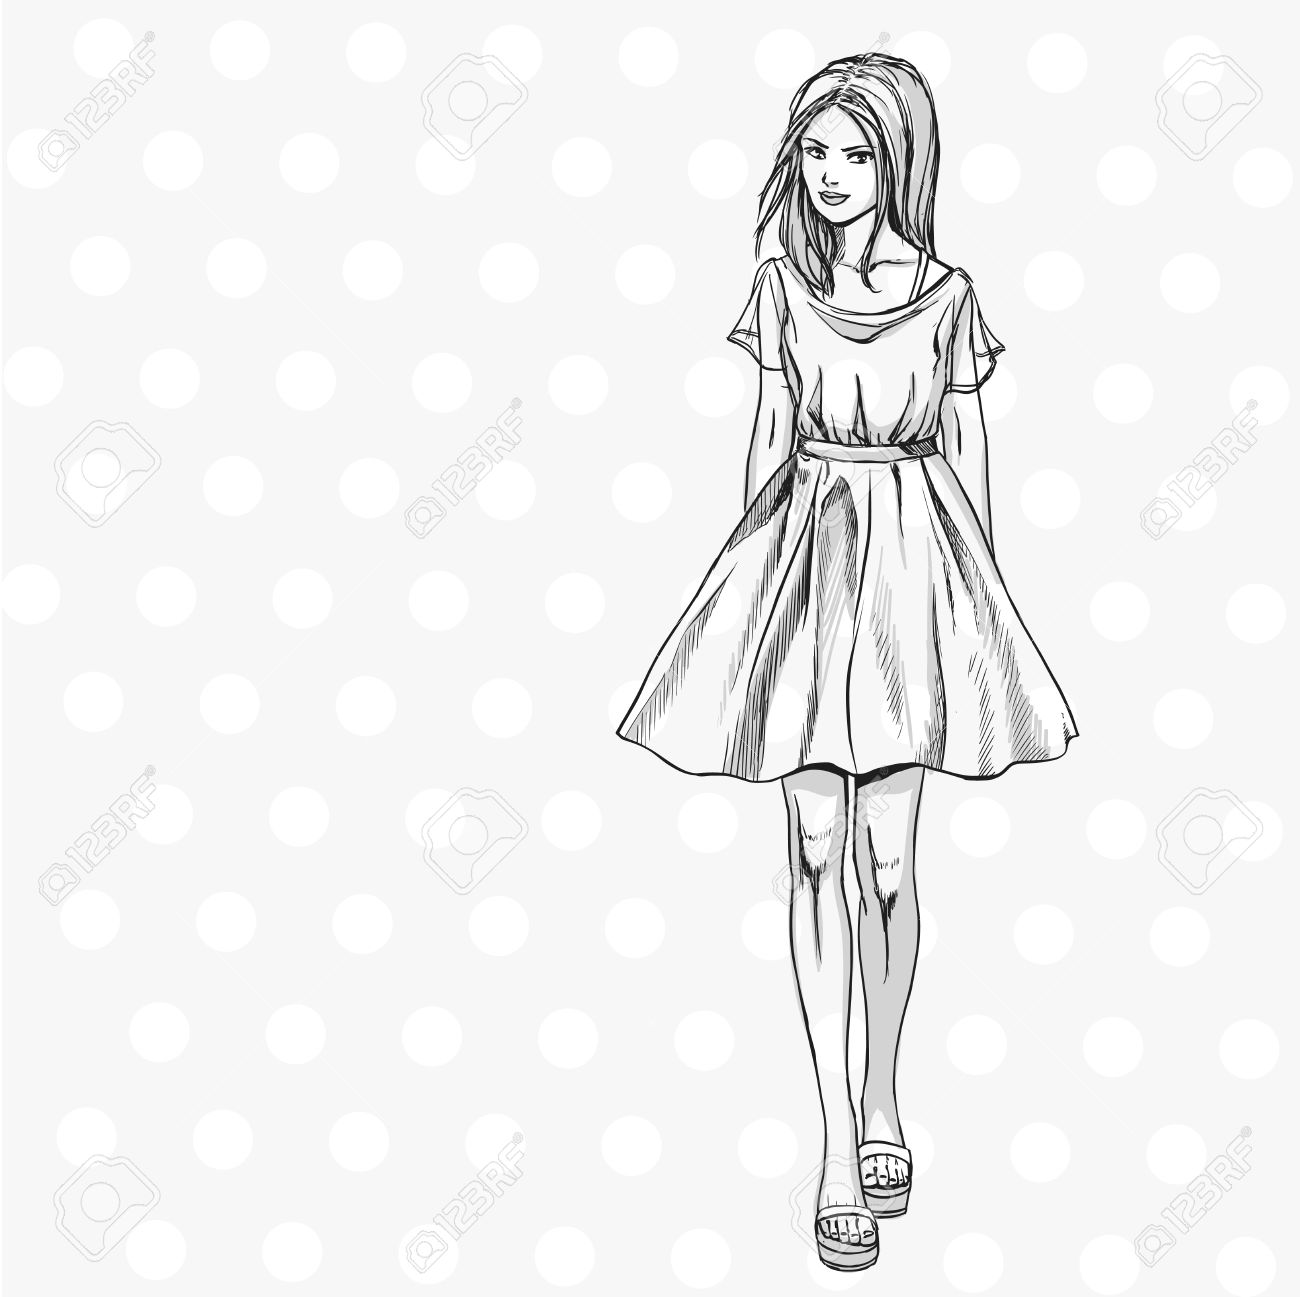 1300x1297 Young Fashionable Slender Girl In Summer Dress. Comics Sketch